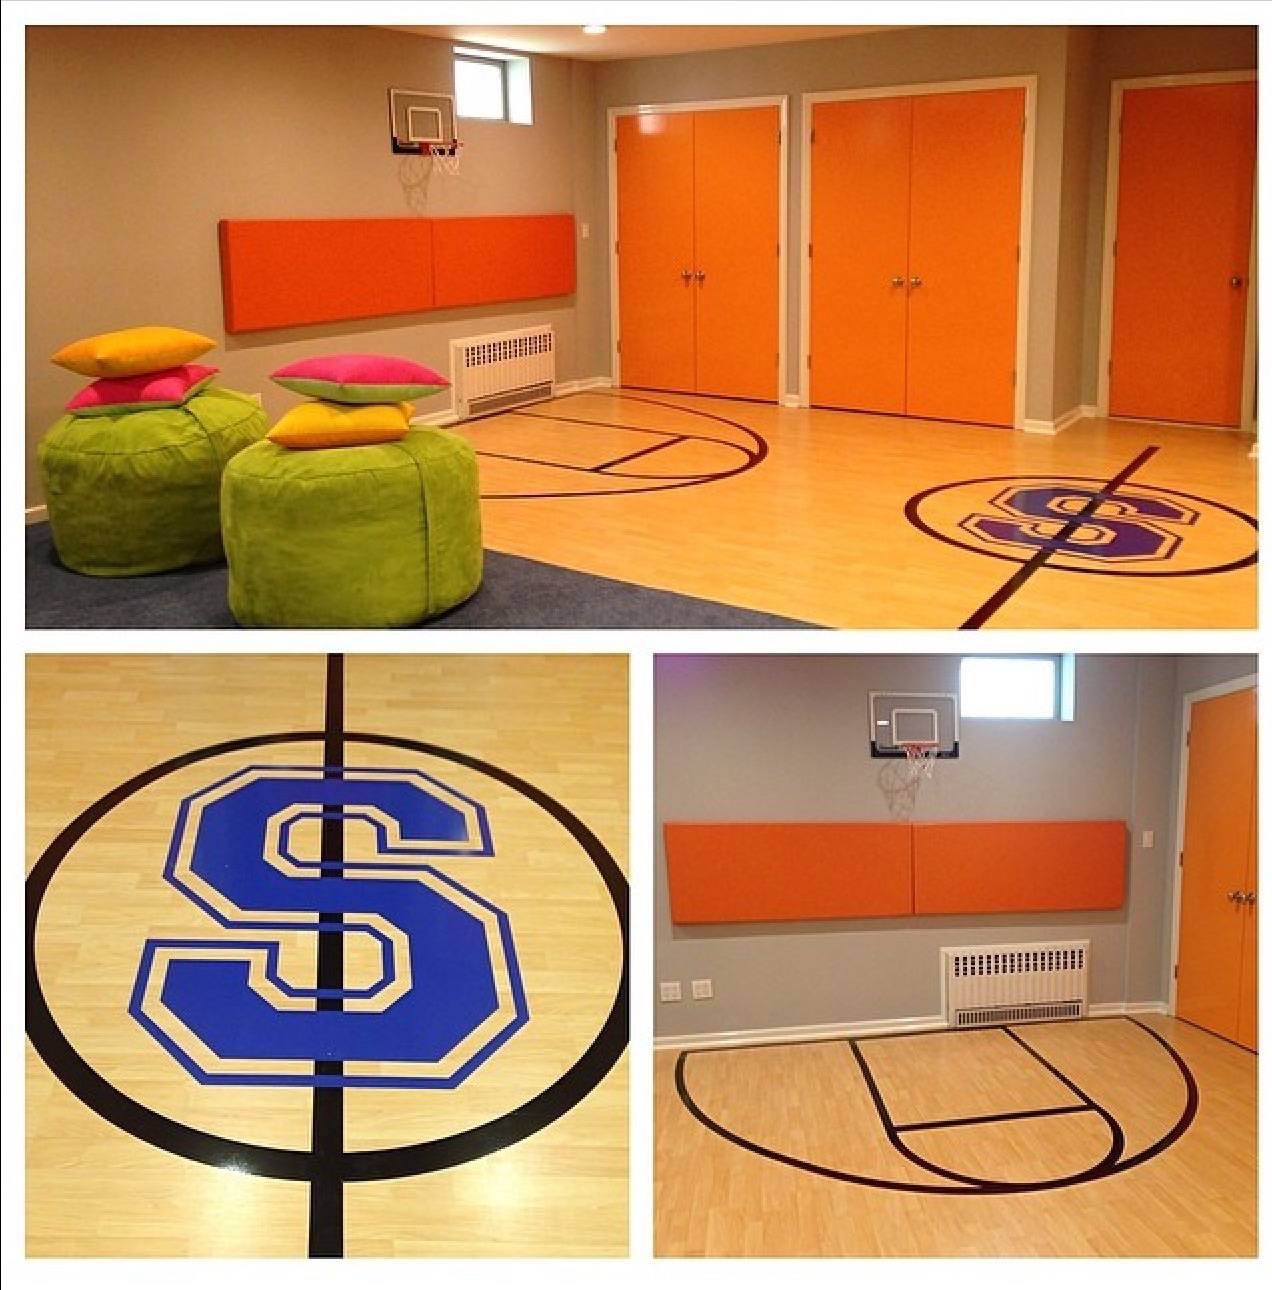 An amazing basketball ready basement. Decals, wood flooring, padded walls. No job too big for LMO...